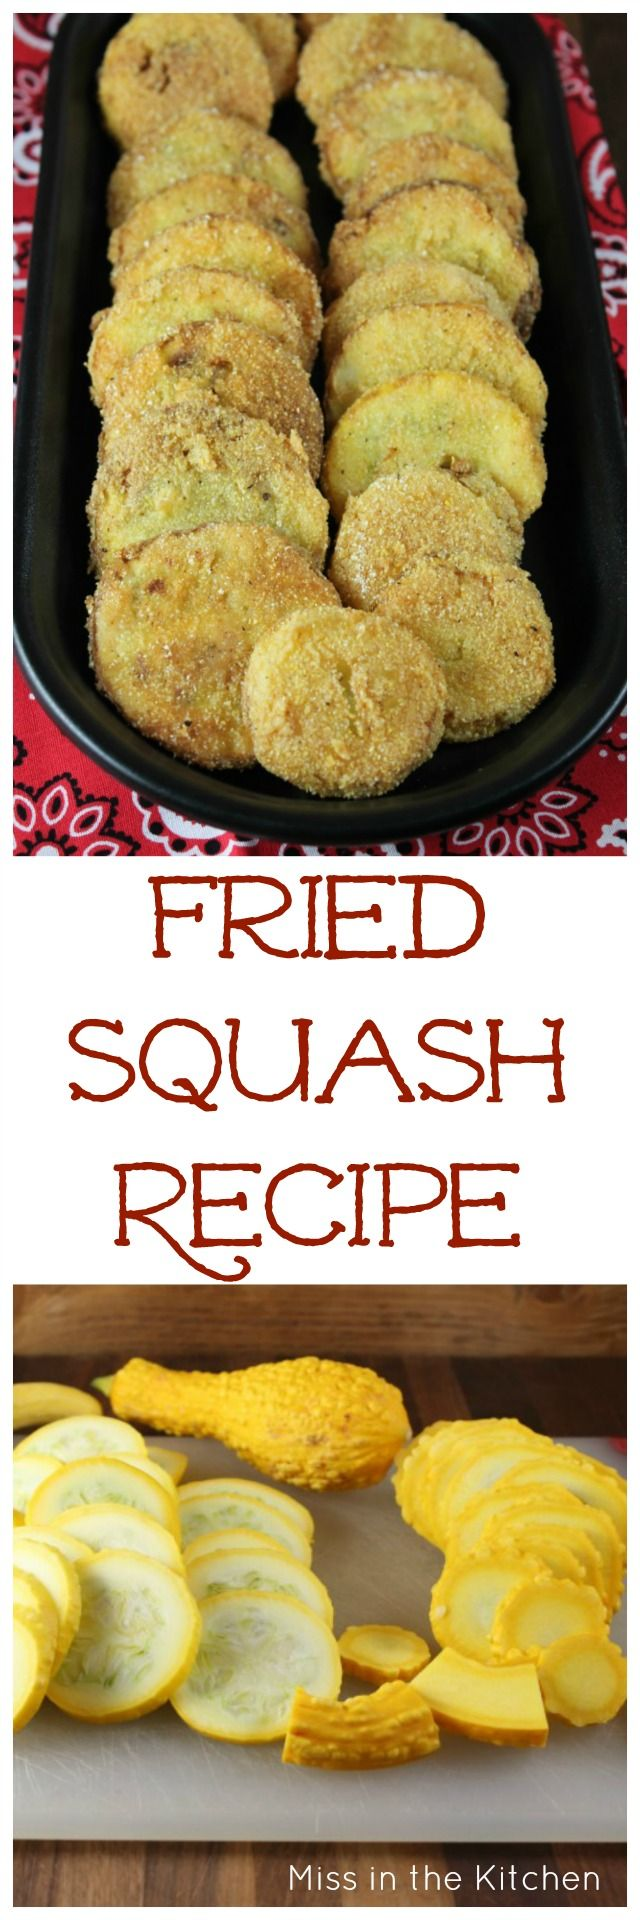 Fried Squash Recipe found at MissintheKitchen.com